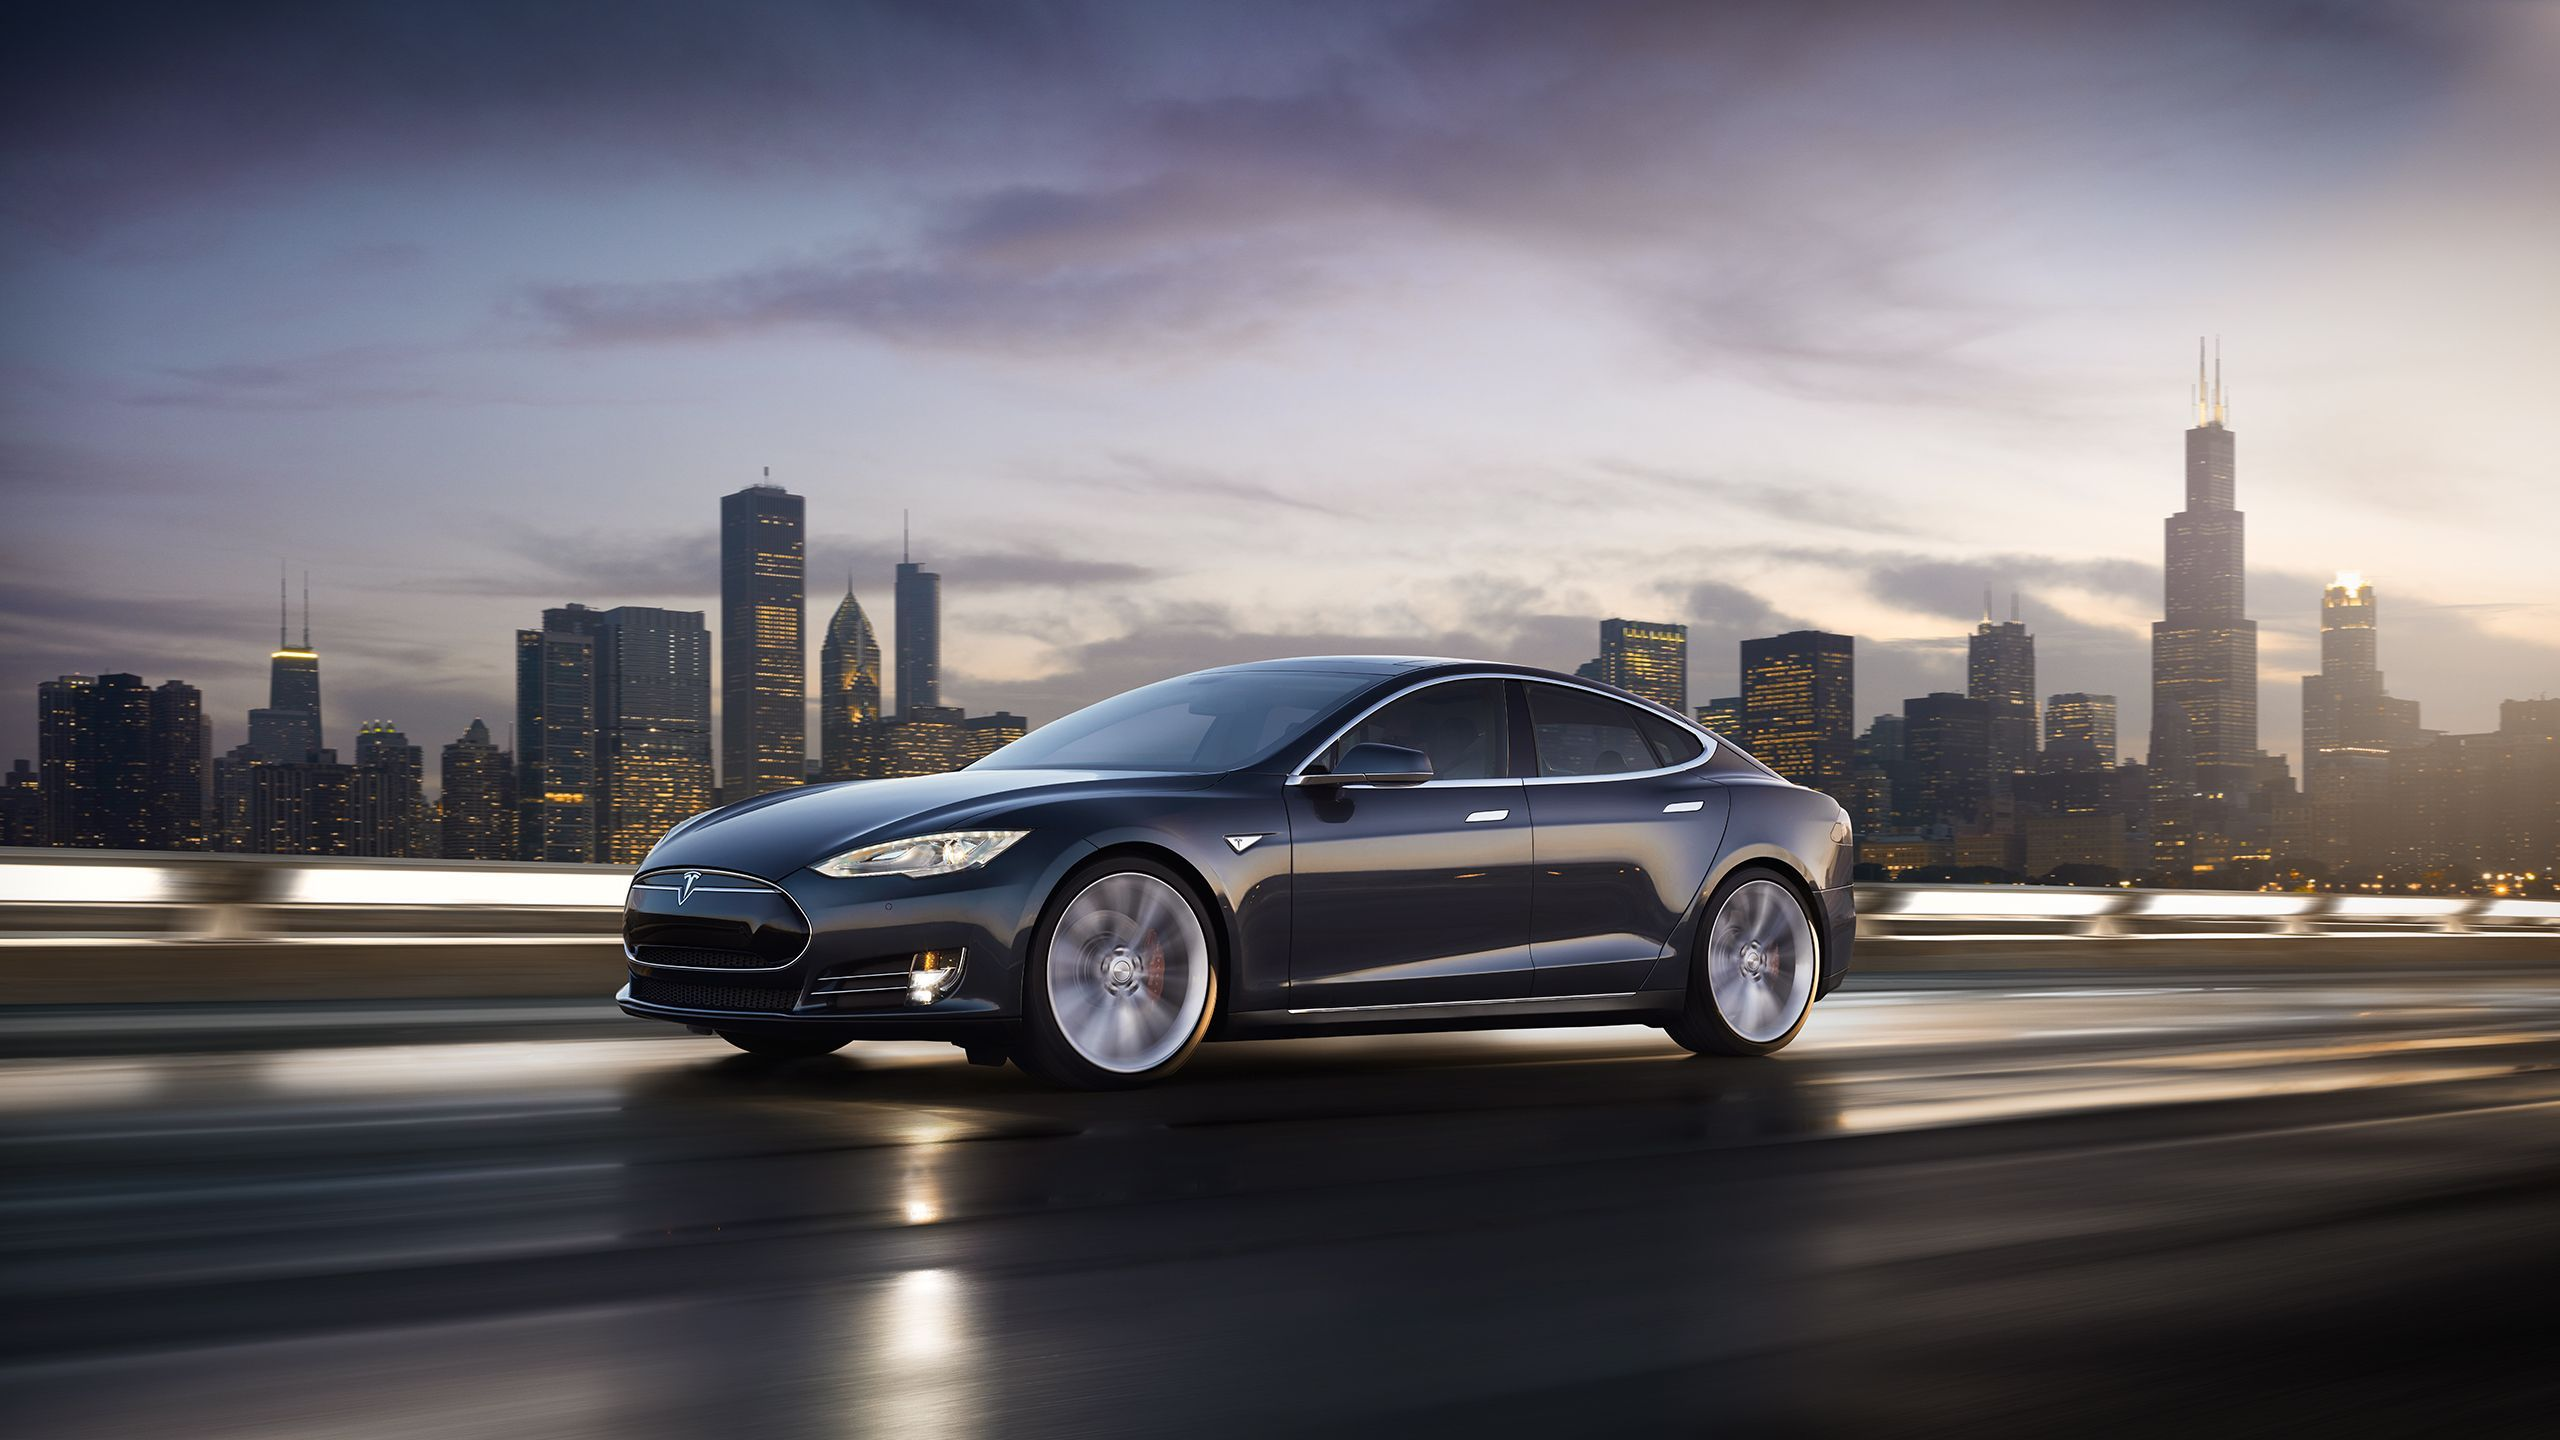 Tesla Model S electric car in wallpapers and images | wallpapers | Tesla roadster, Tesla model x ...